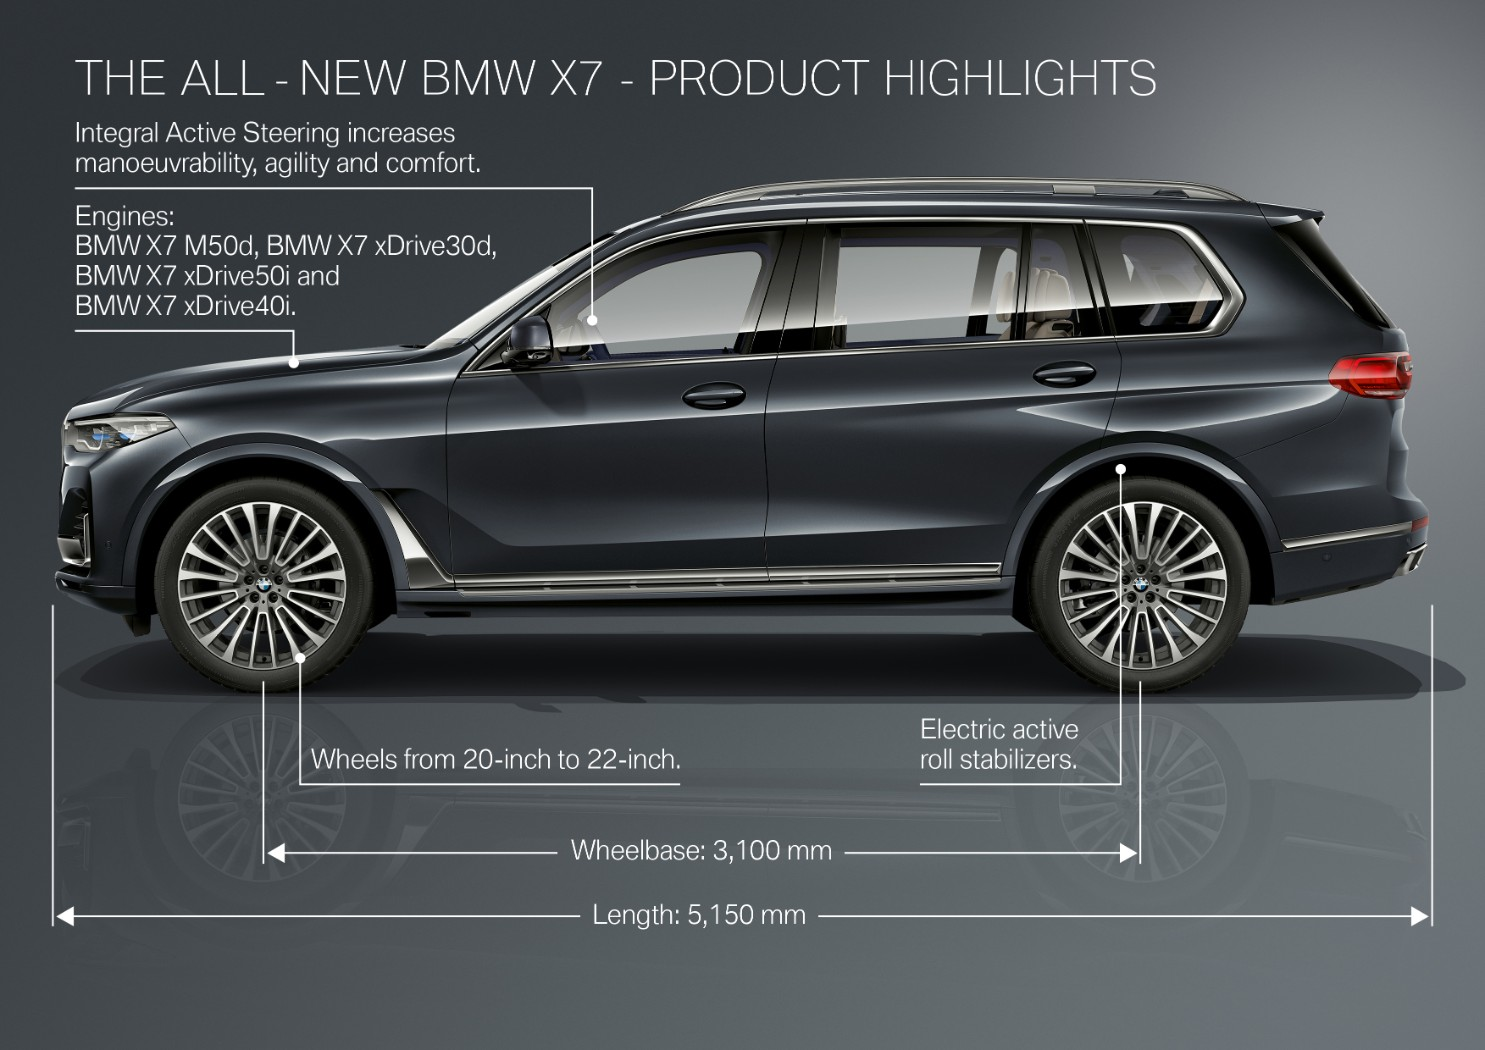 2020 bmw x7 g07 goes official with 7 seats and gigantic 2000 bmw engine diagram auxilairy bmw engine diagram fan #11